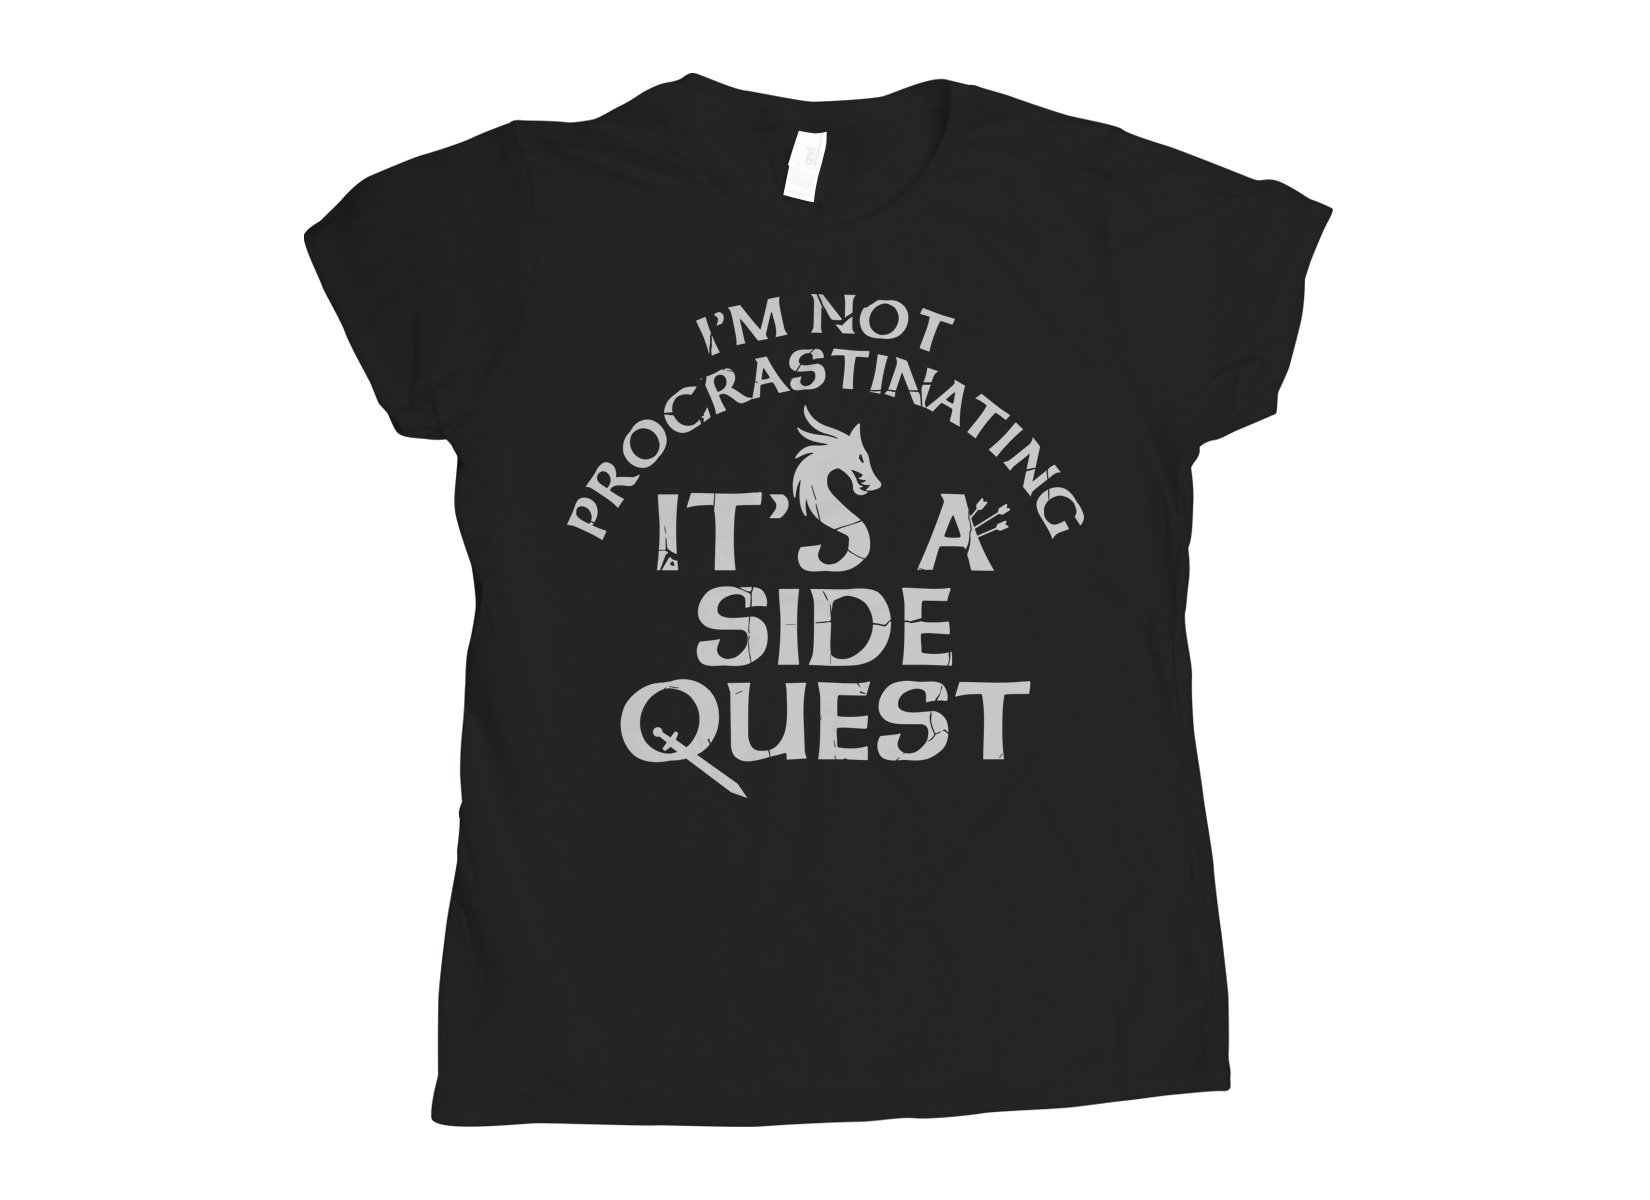 I'm Not Procrastinating, It's A Side Quest on Womens T-Shirt